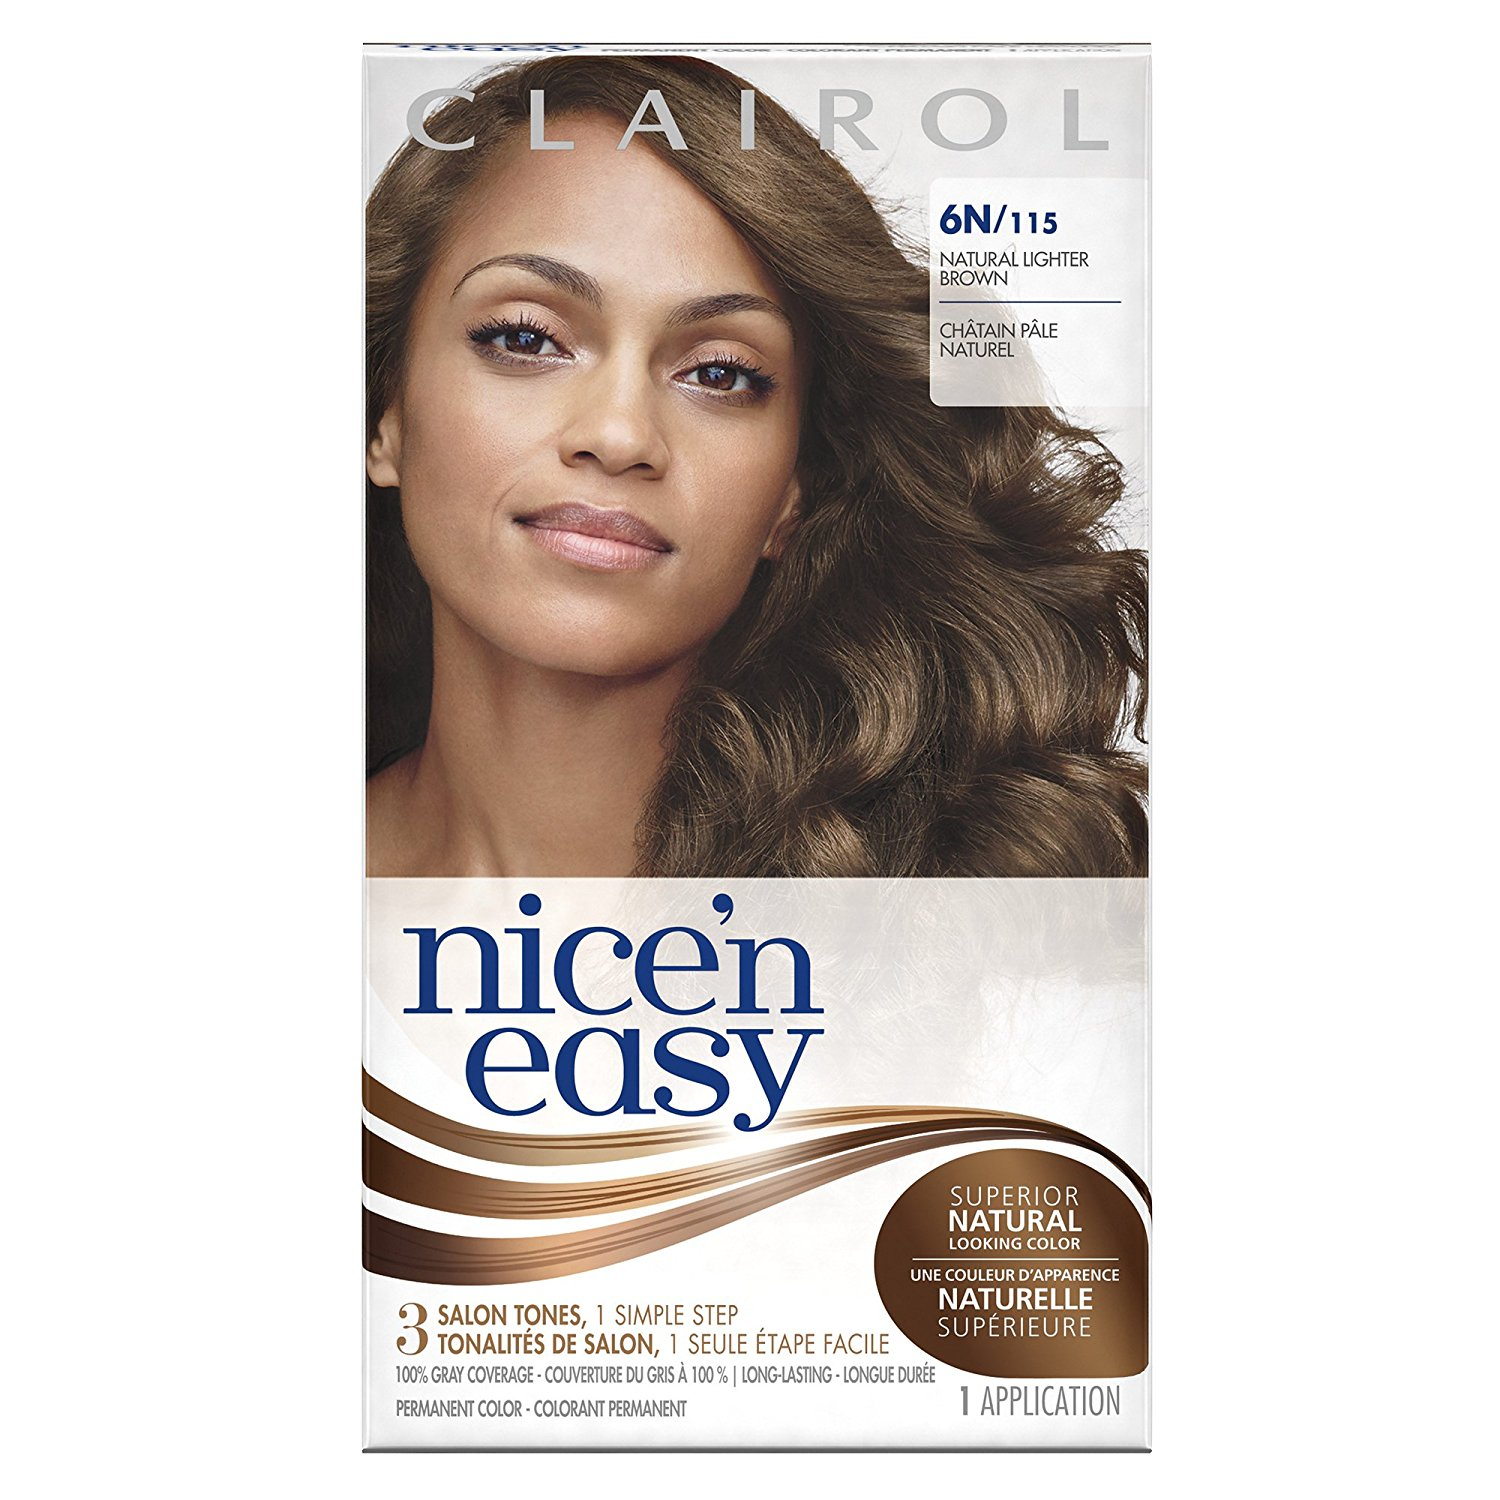 Cheap Ms Clairol Hair Color Find Ms Clairol Hair Color Deals On